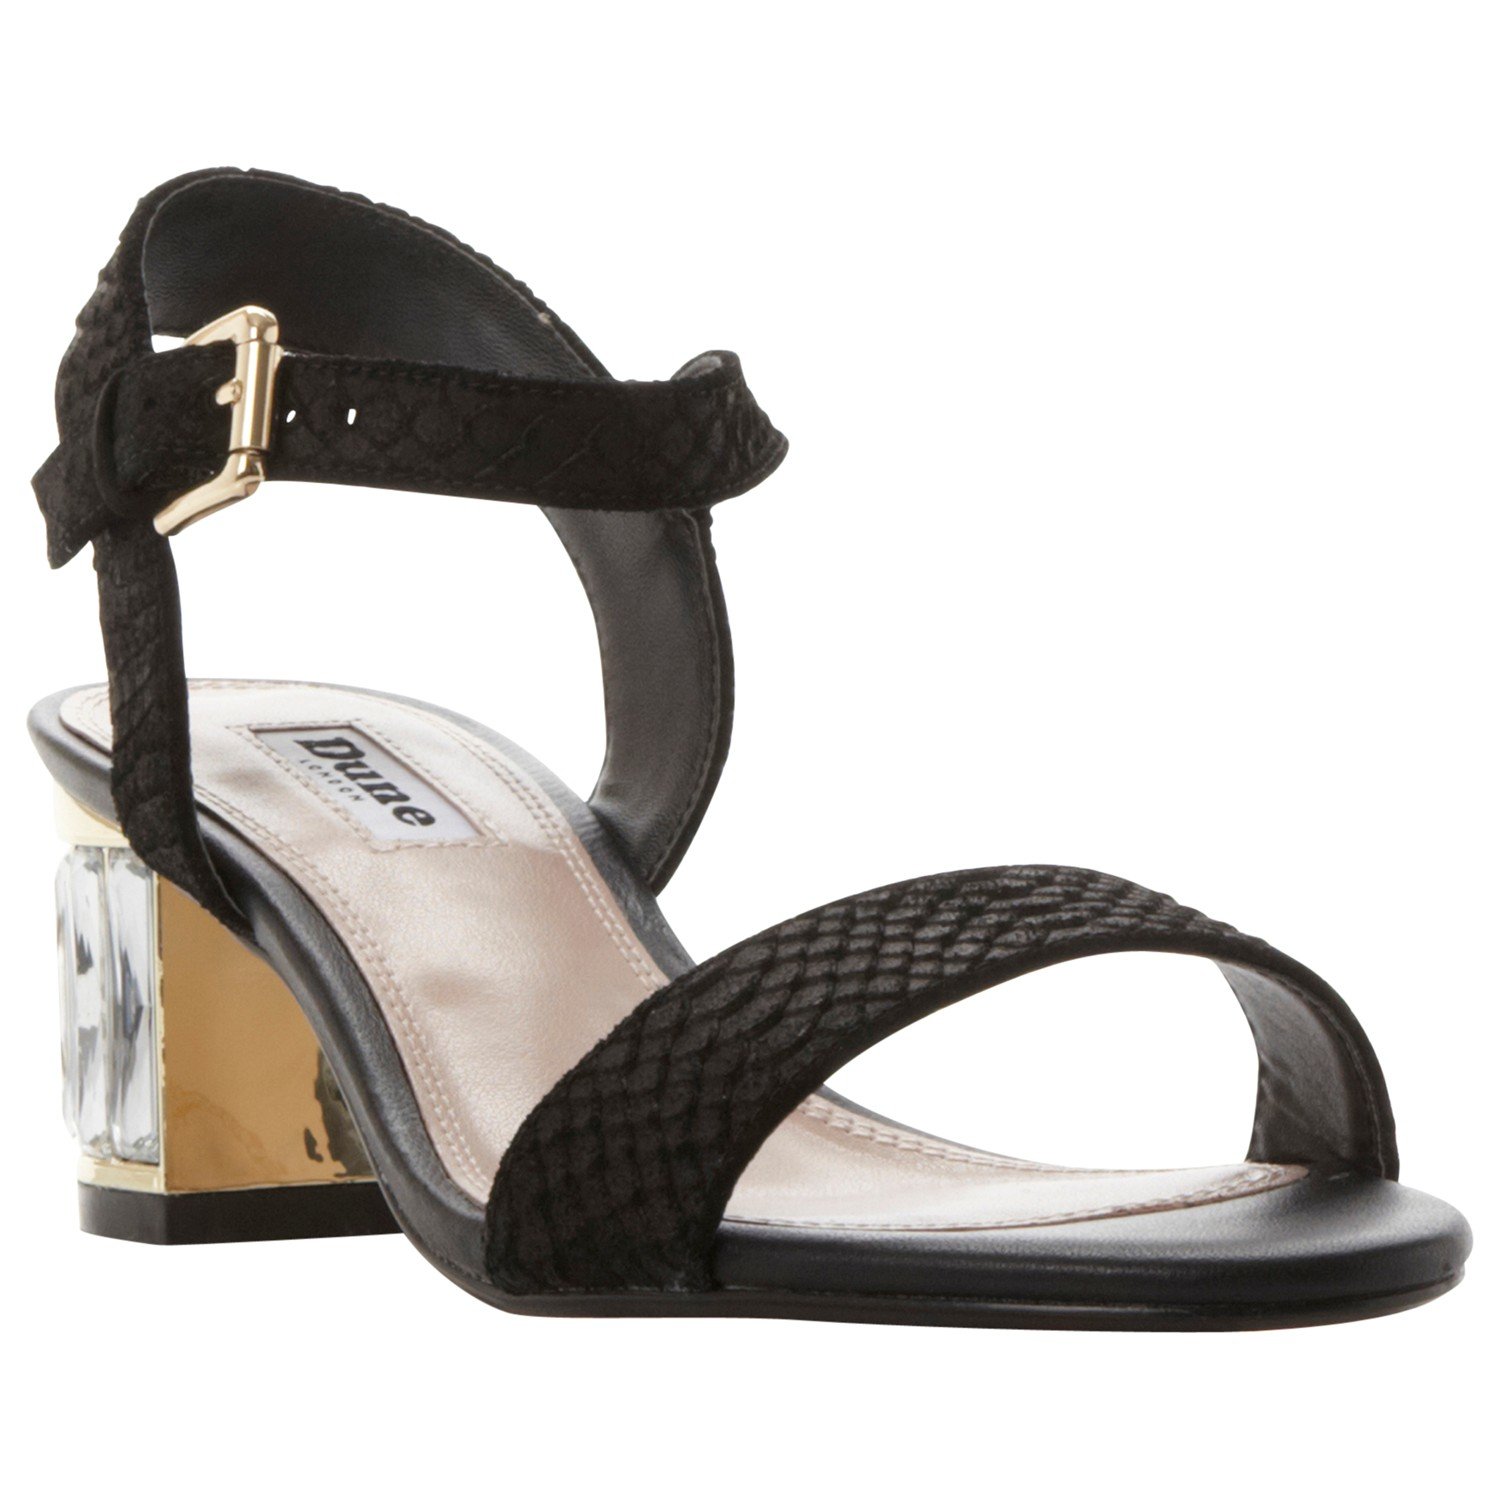 922d10e37 Dune Marcia Jewelled Block Heel Sandals in Black - Lyst